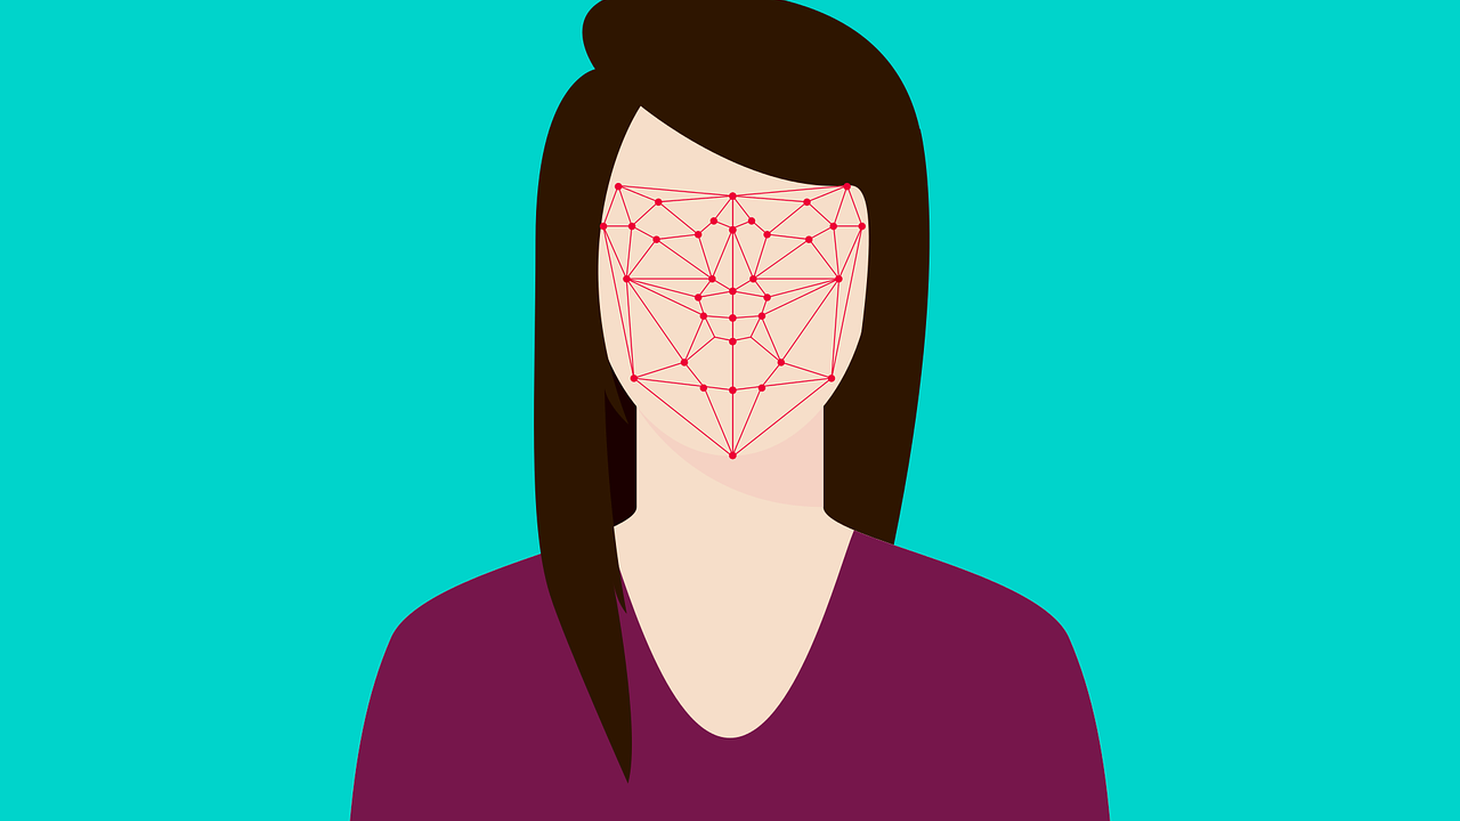 Facial recognition graphic.